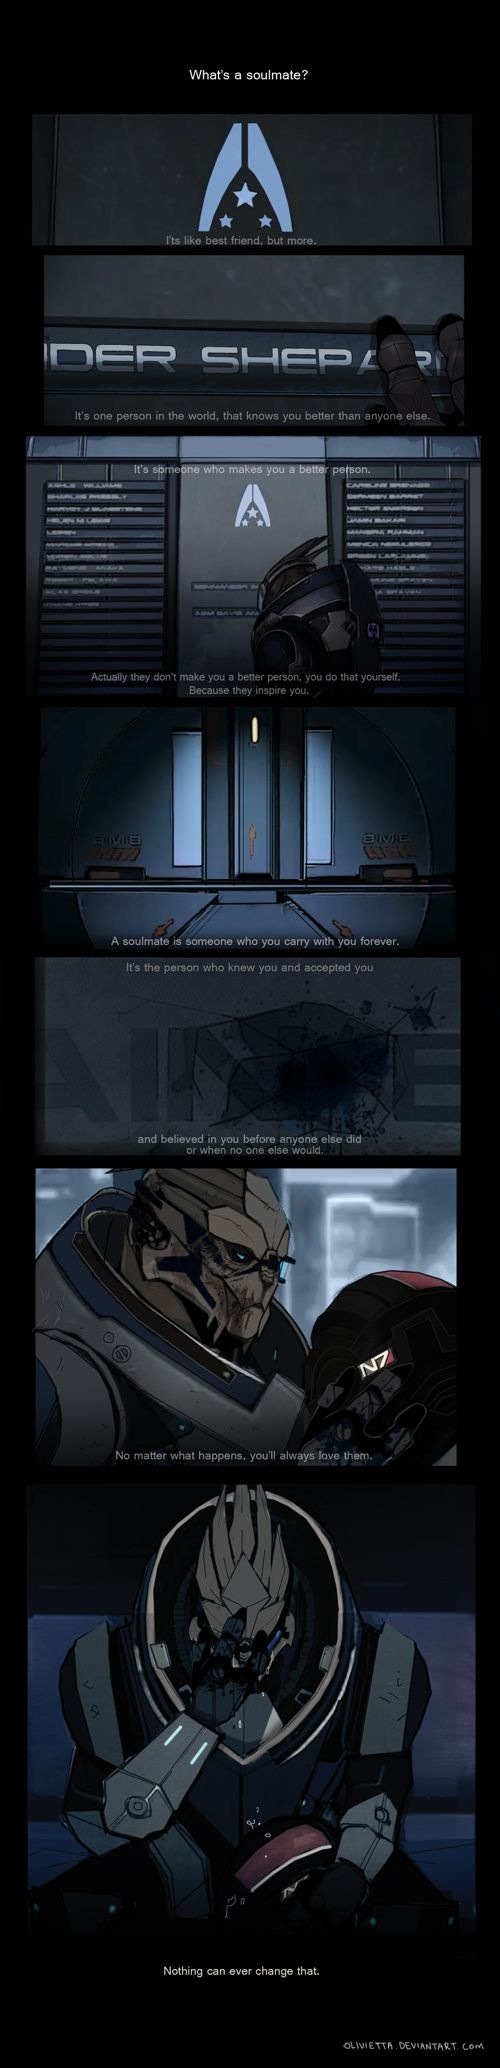 Mass-effect-this-is-why-I-love-you-Garrus-wallpaper-wpc5807036